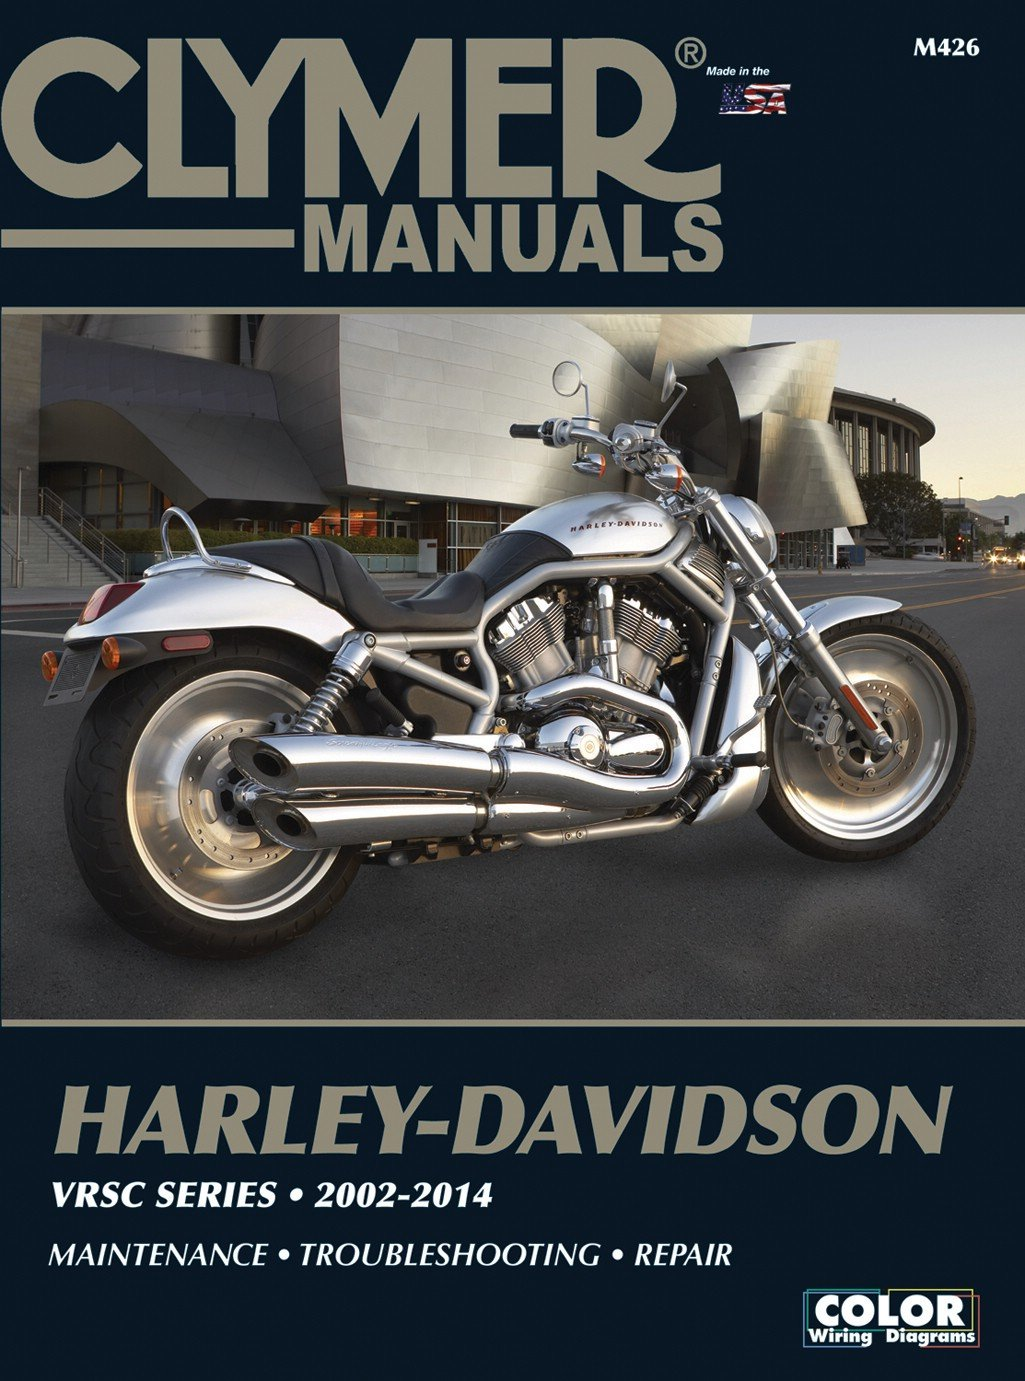 Harley Davidson Vrscx 1250 V Rod Global 2007 Manuals Clymer Harleydavidson Motorcycles This Diagram Provides A Parts Detail For Each Car Motorbike